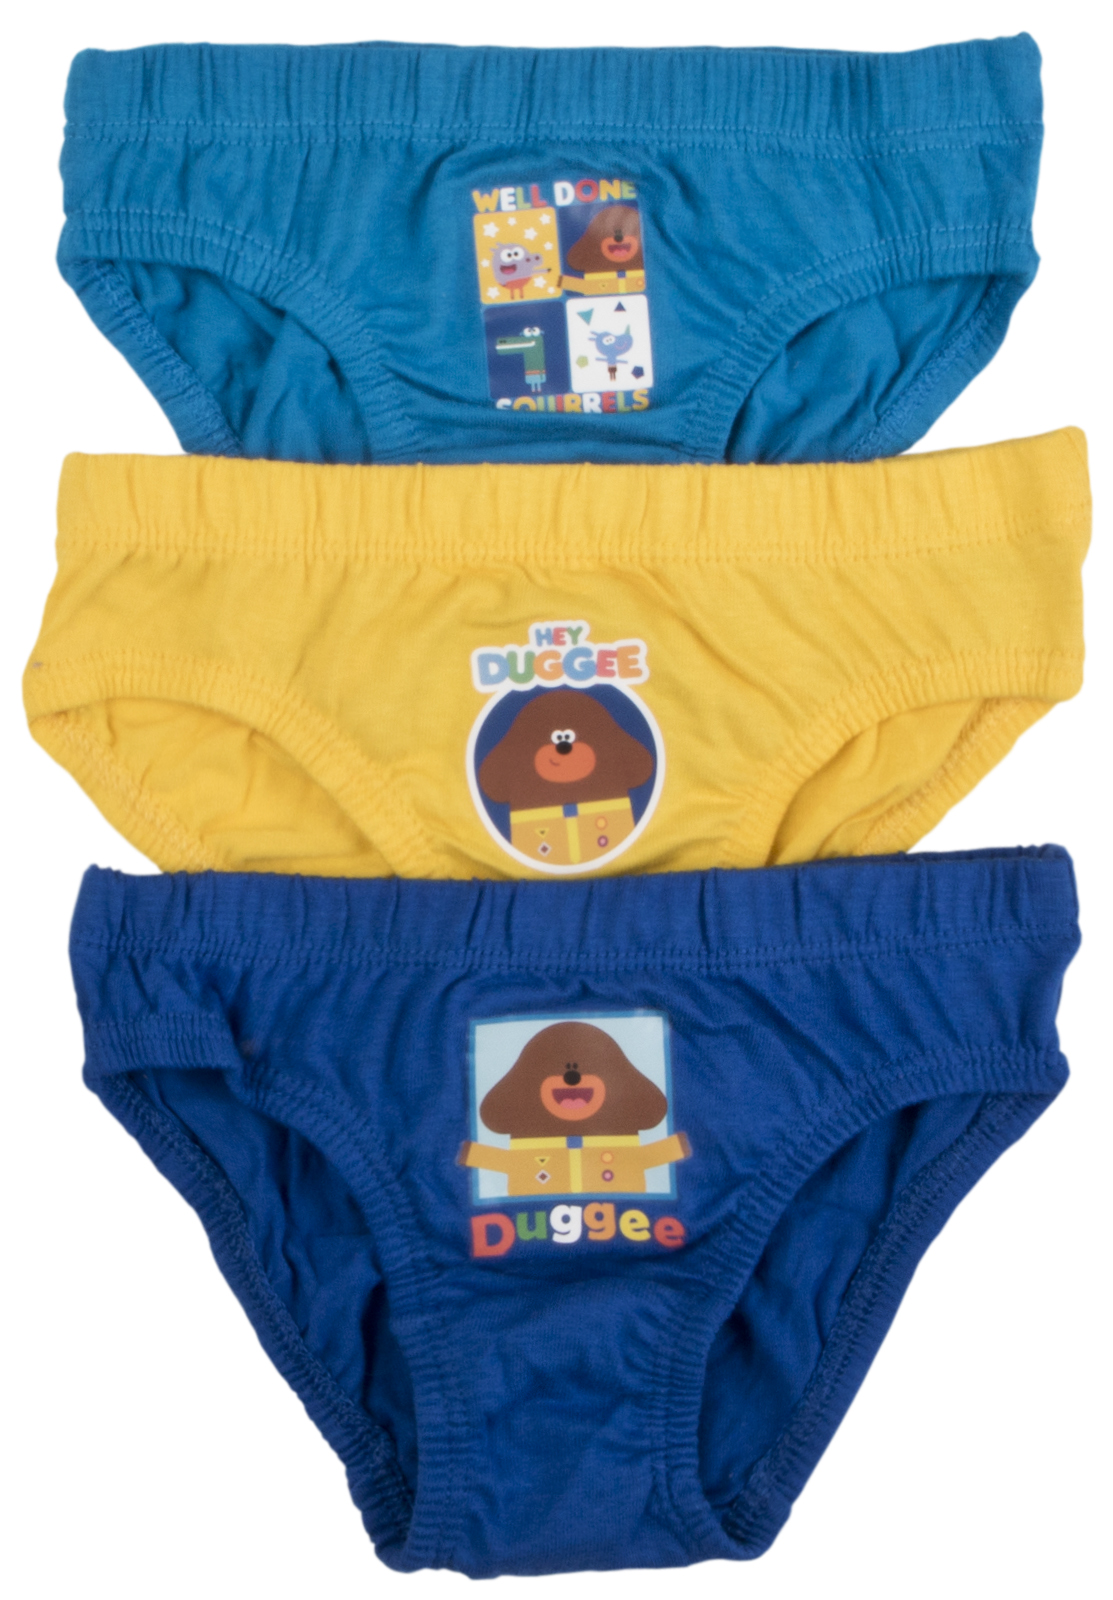 DISNEY PLANES PACK OF 3 CHARACTER BRIEFS BOYS GIRLS KIDS SIZE 7-8 YEARS